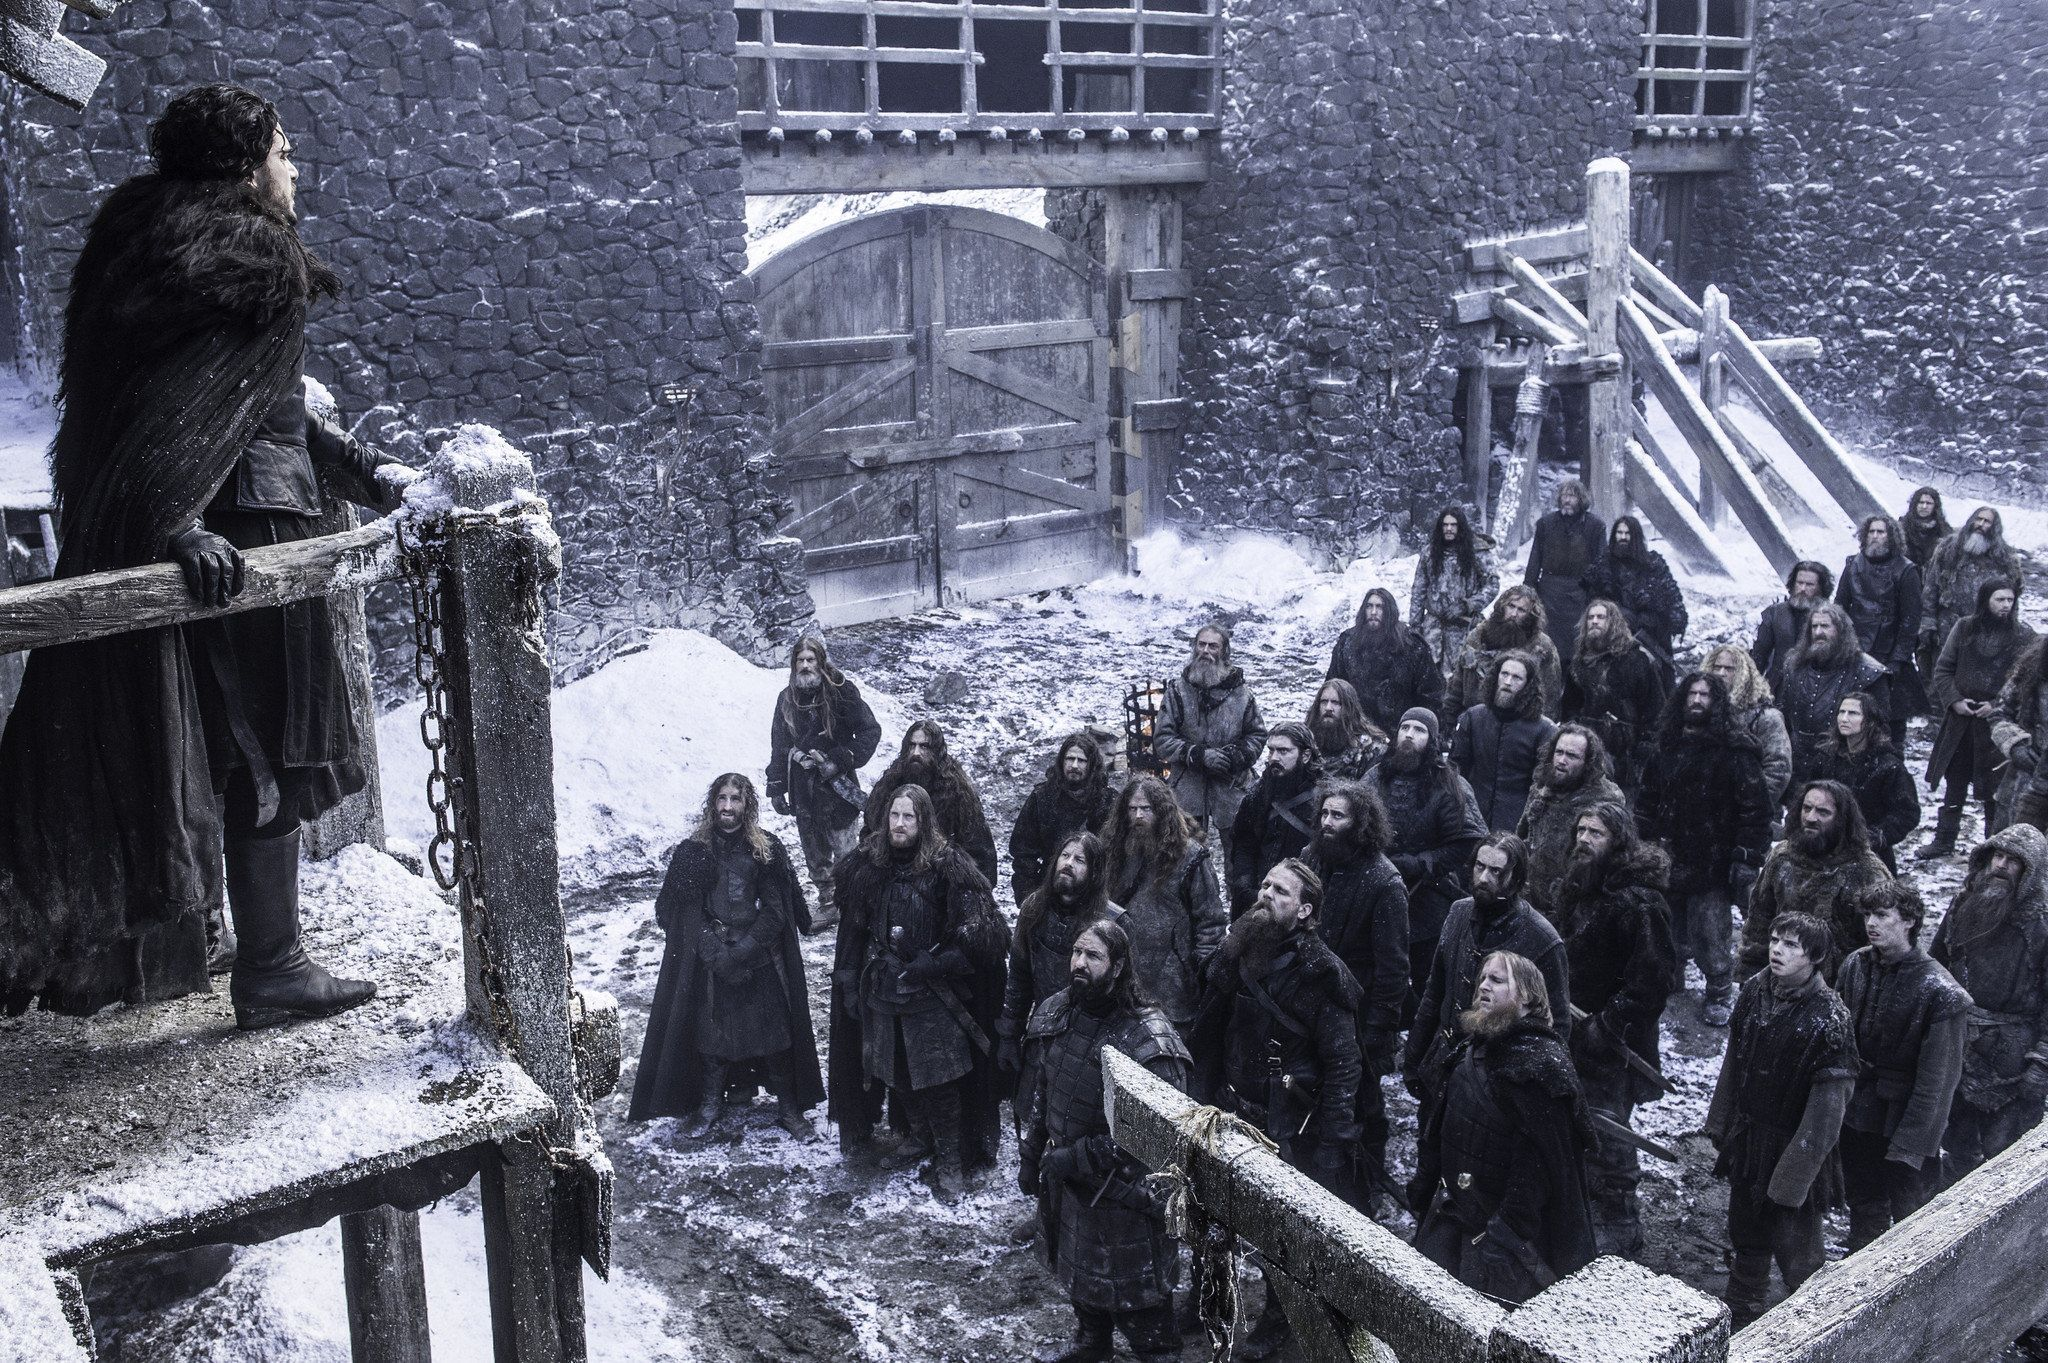 The Night's Watch Capes On 'Game Of Thrones' Are Just Ikea